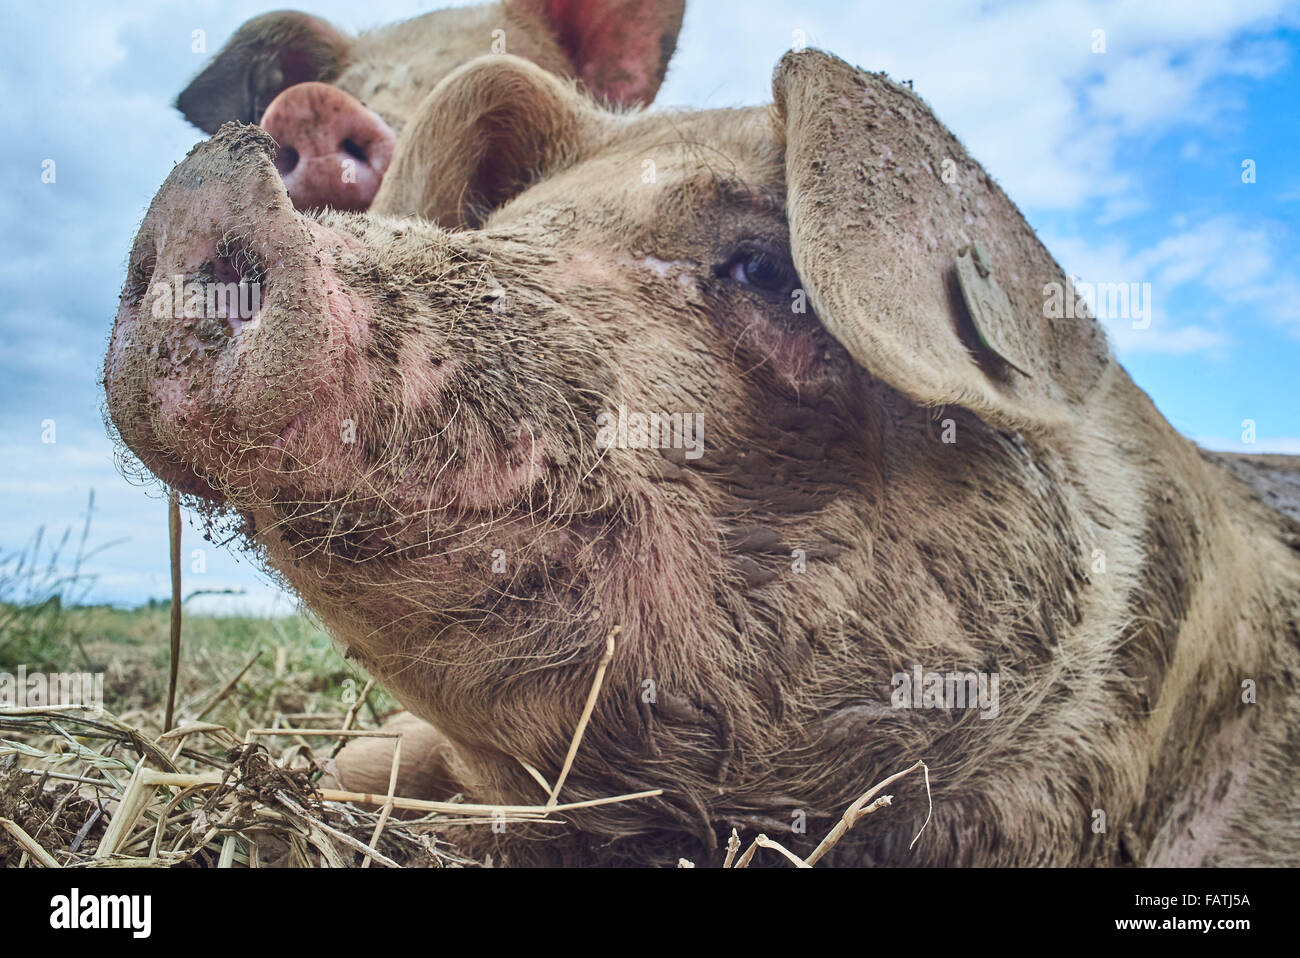 Close up Head shot of free range organic pigs in a field - Stock Image